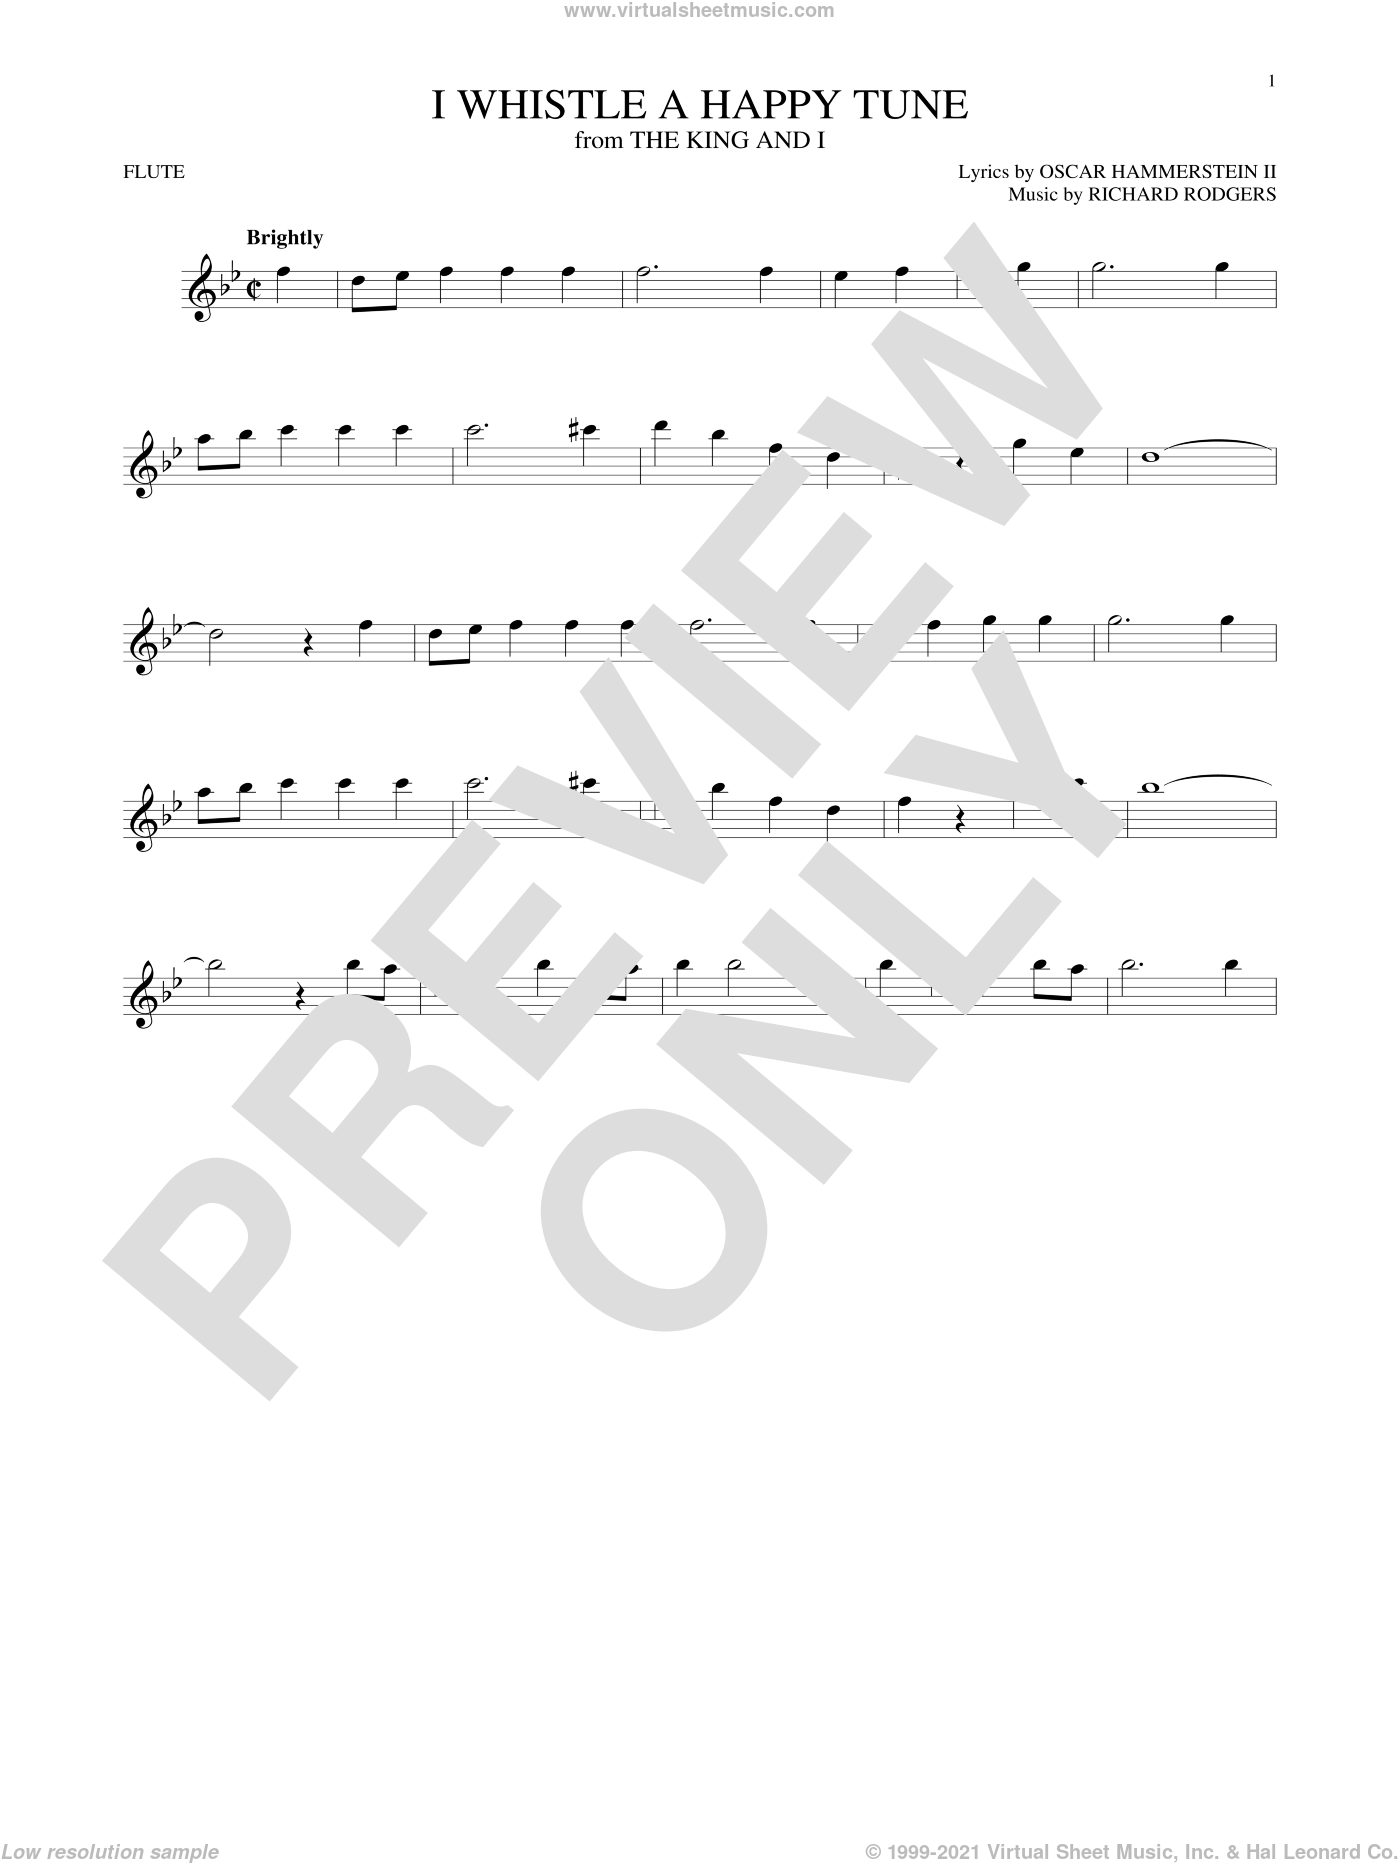 I Whistle A Happy Tune sheet music for flute solo by Richard Rodgers, Oscar II Hammerstein and Rodgers & Hammerstein, intermediate skill level